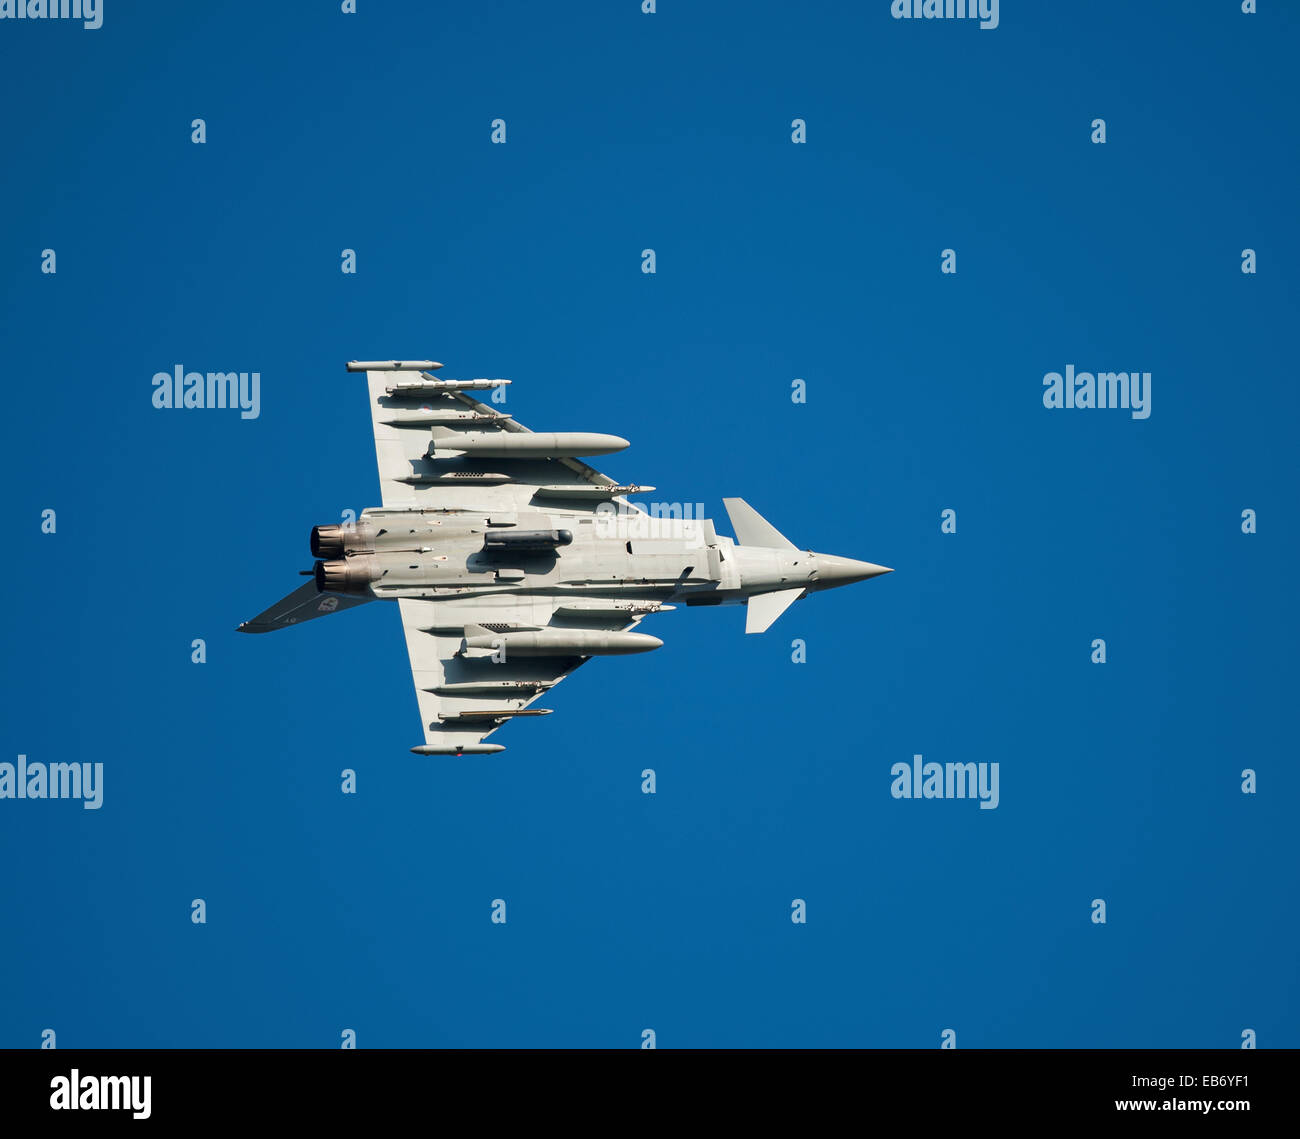 Eurofighter Typhoon FRG4 Military Fast Jet Fighter.  SCO 9196. - Stock Image